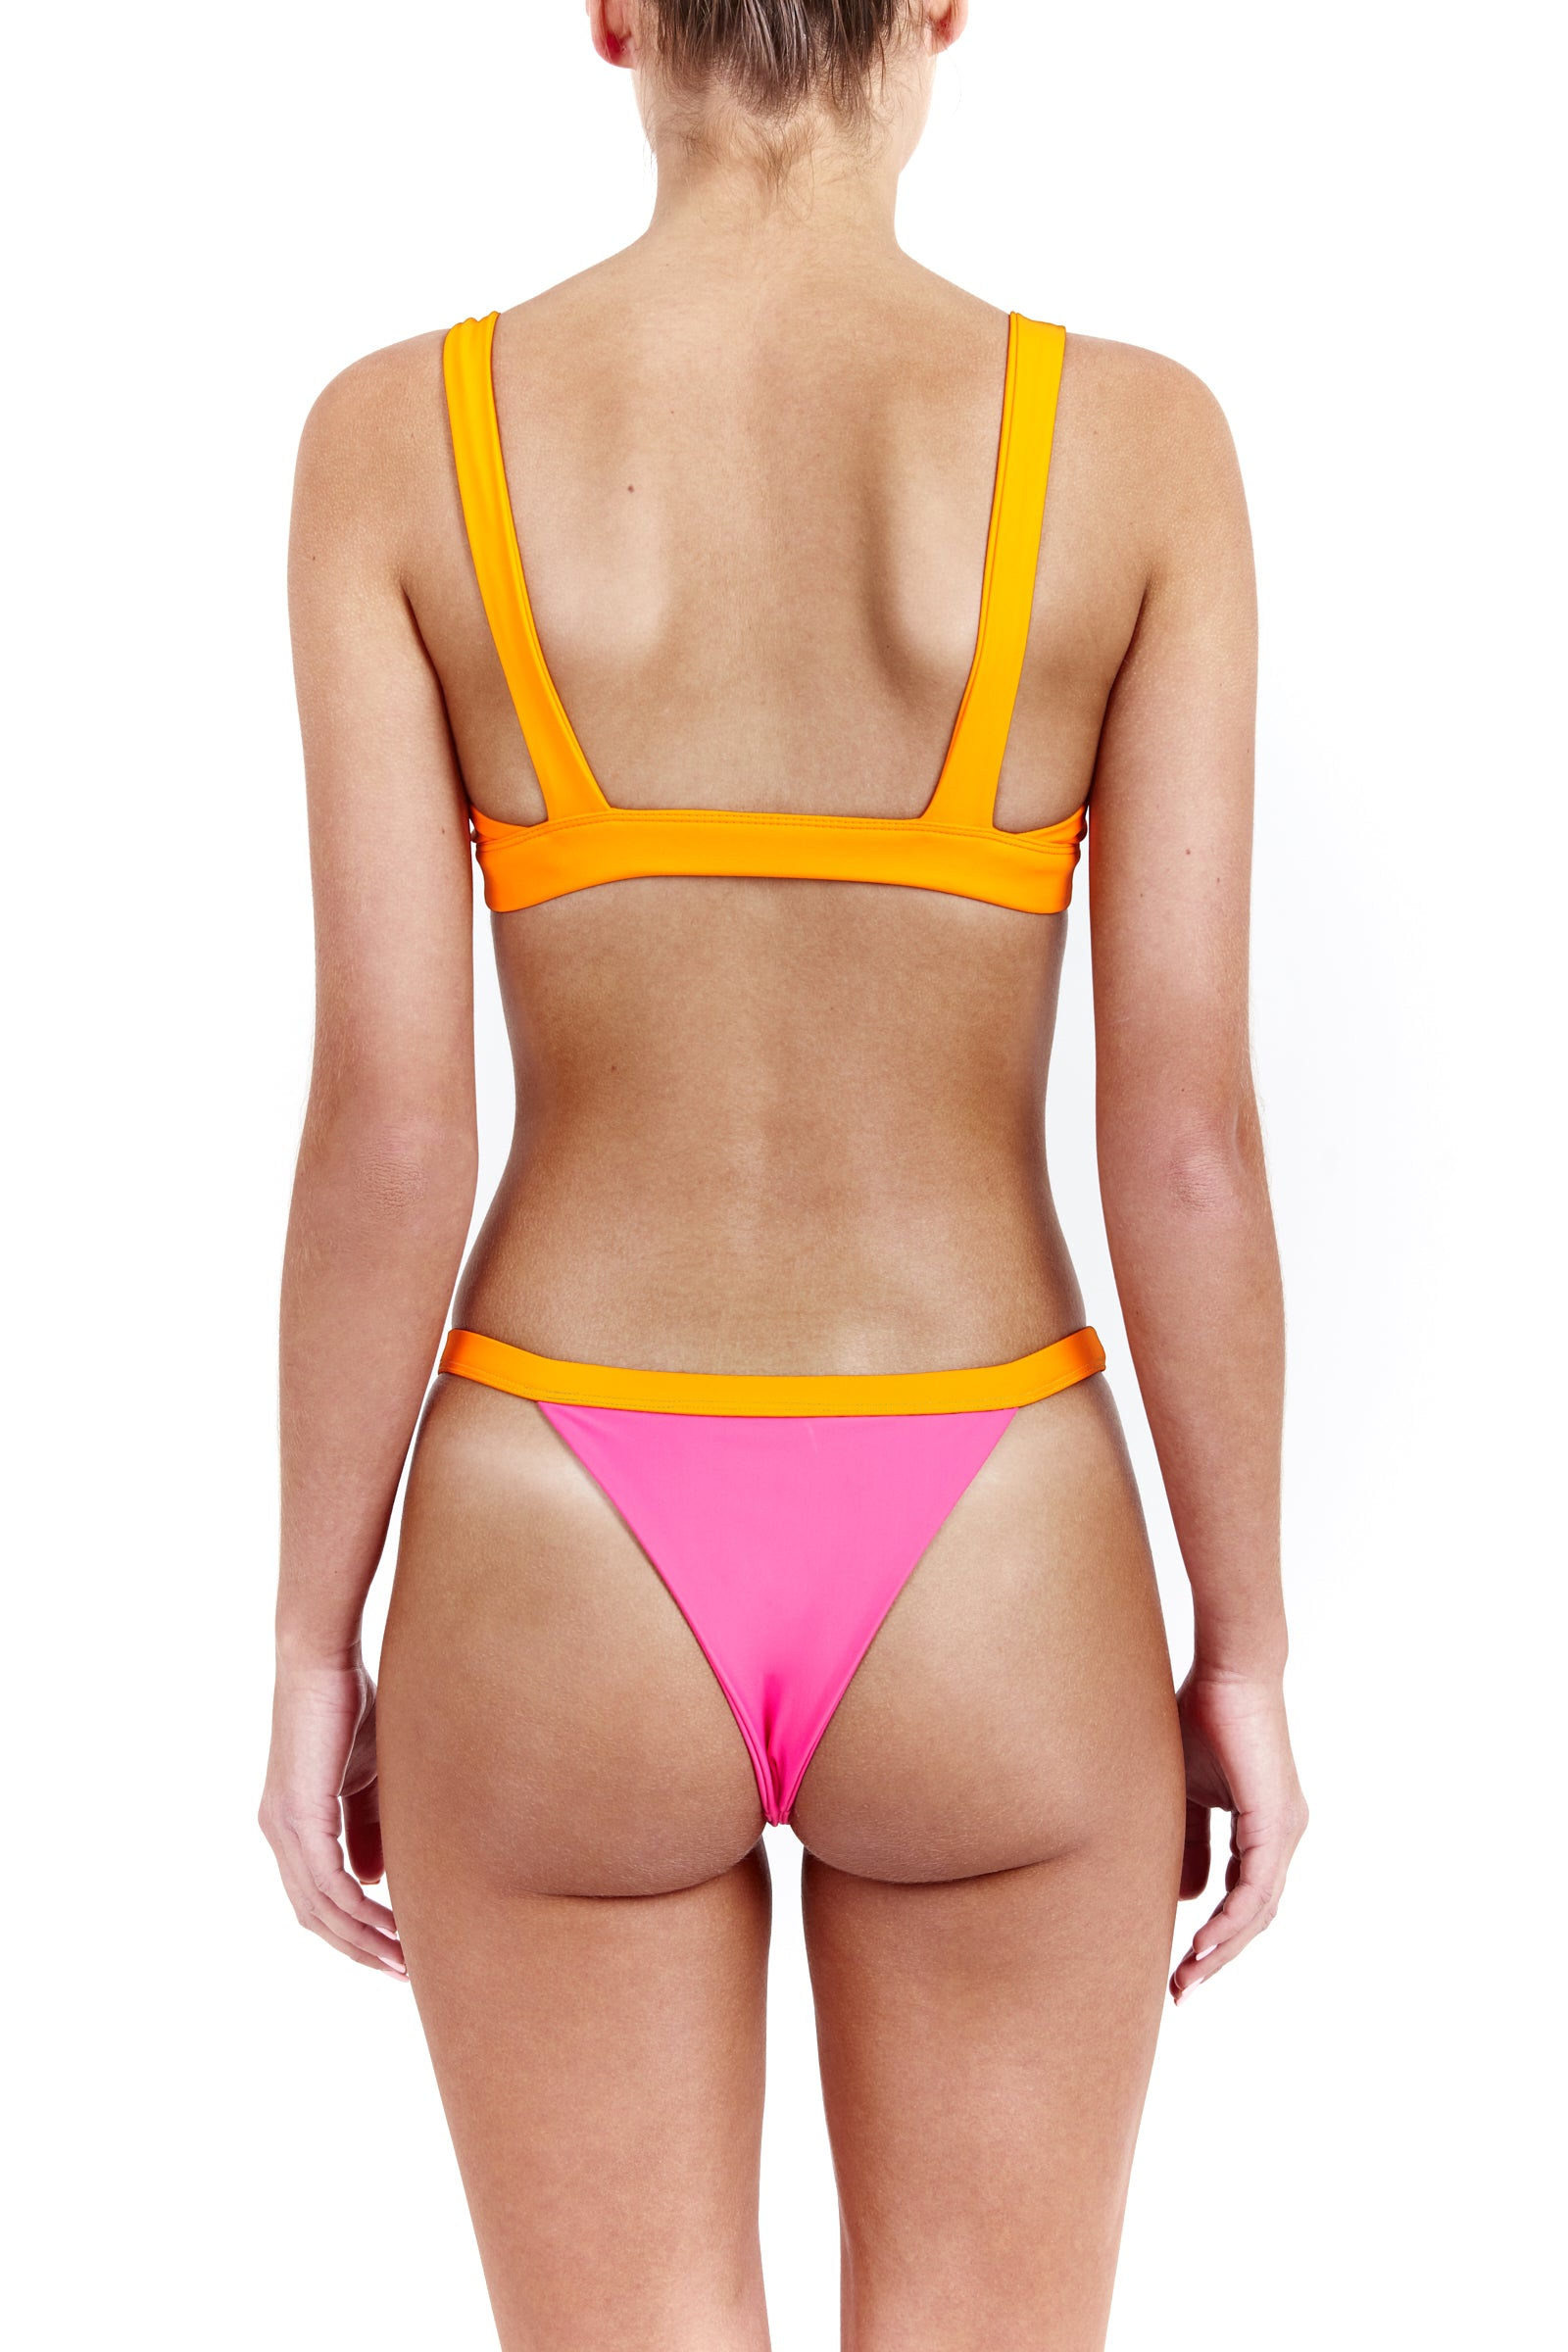 BANDIT bottoms - tangerine/ hot pink